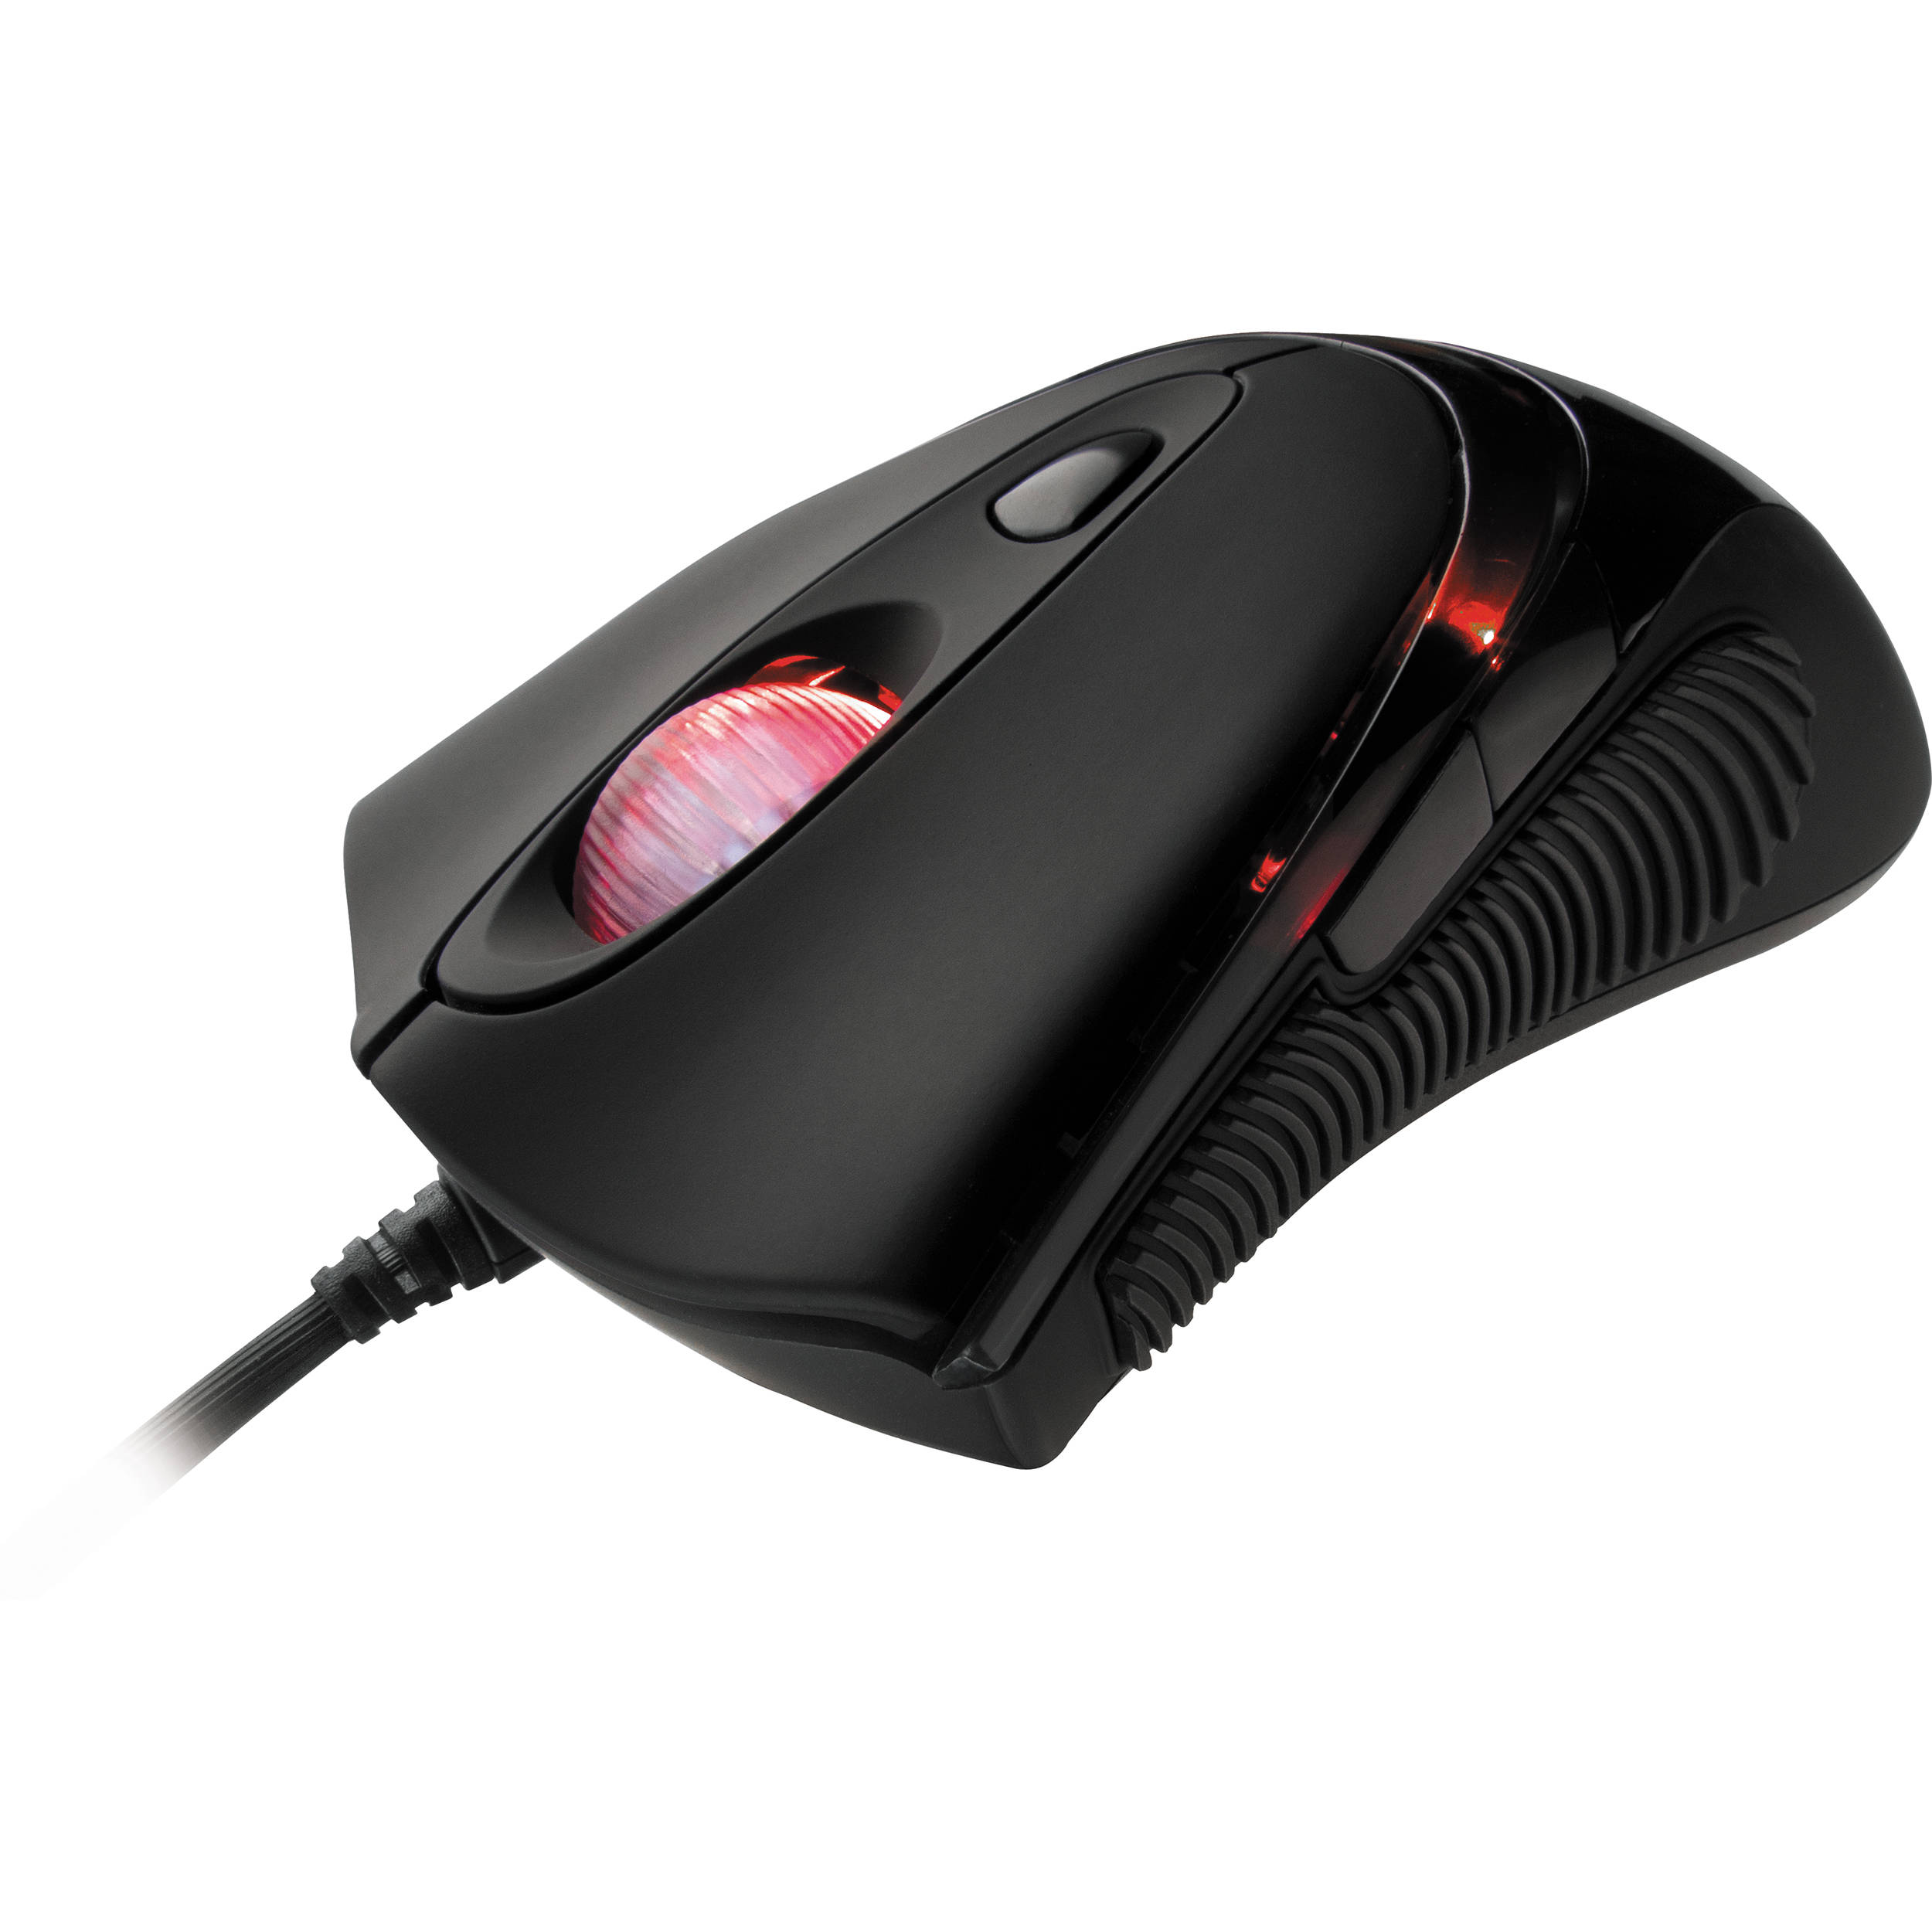 CORSAIR RAPTOR LM3 GAMING MOUSE DRIVER FOR WINDOWS 7